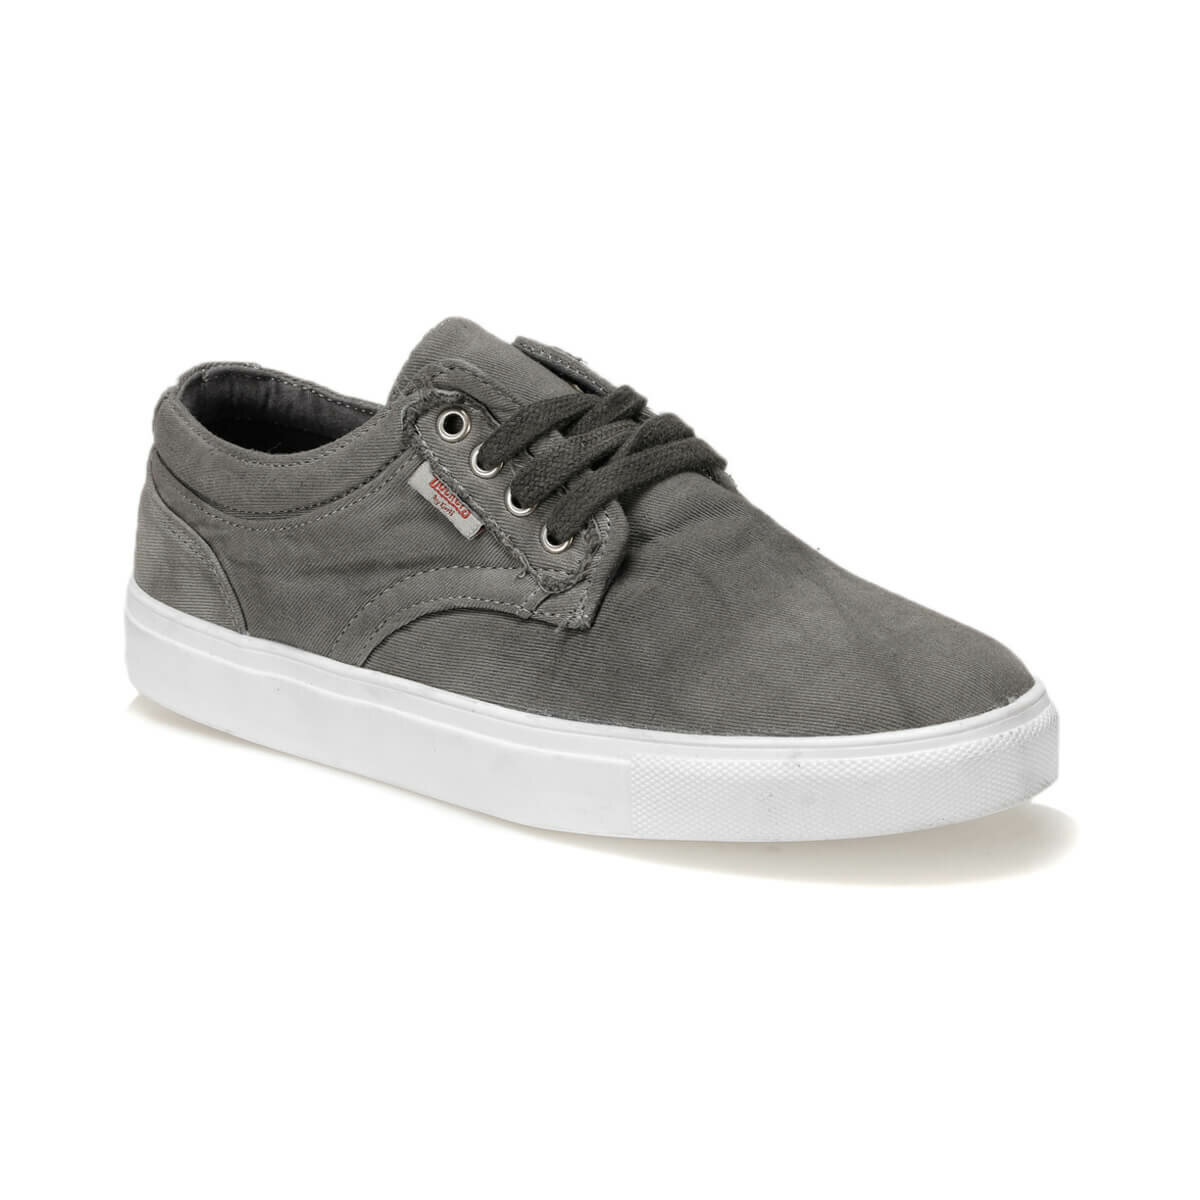 FLO 220532 Dark Gray Men 'S Sneaker Shoes By Dockers The Gerle